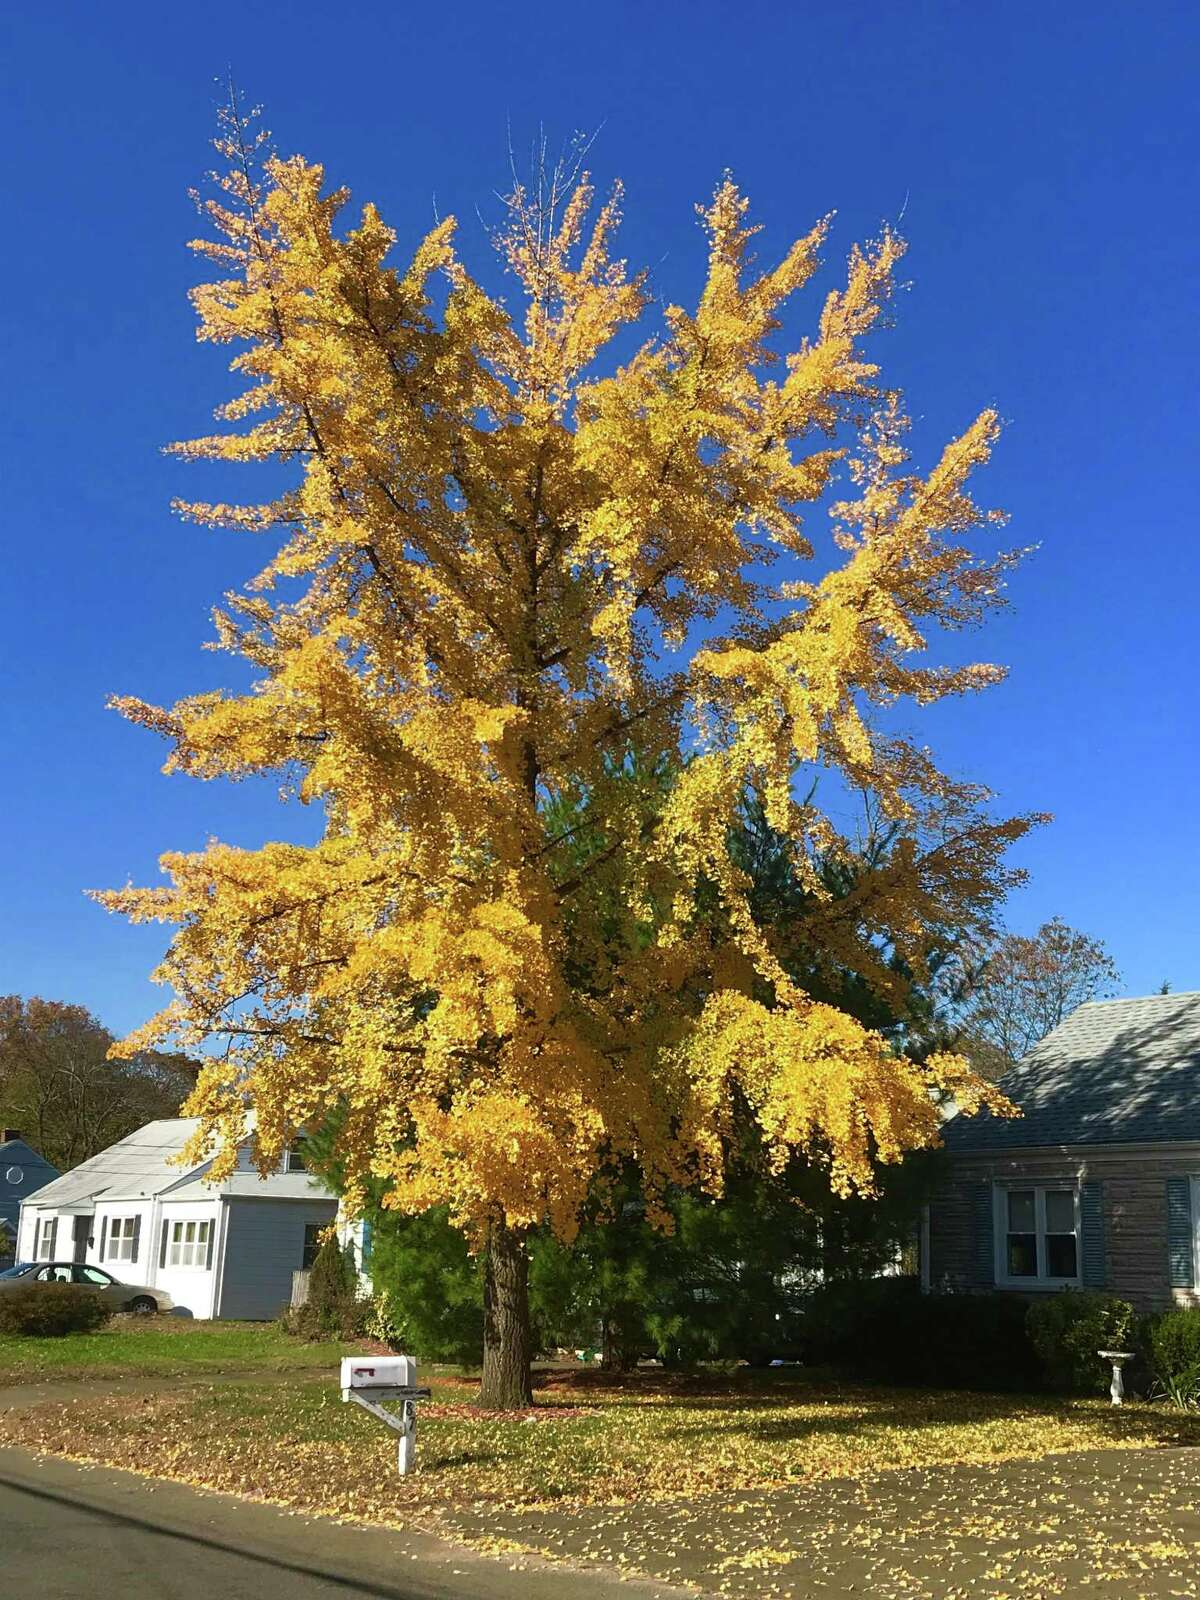 The Hamden Tree Commission has named this ginkgo tree (Ginkgo biloba) as the Hamden Notable Tree for the month of October.